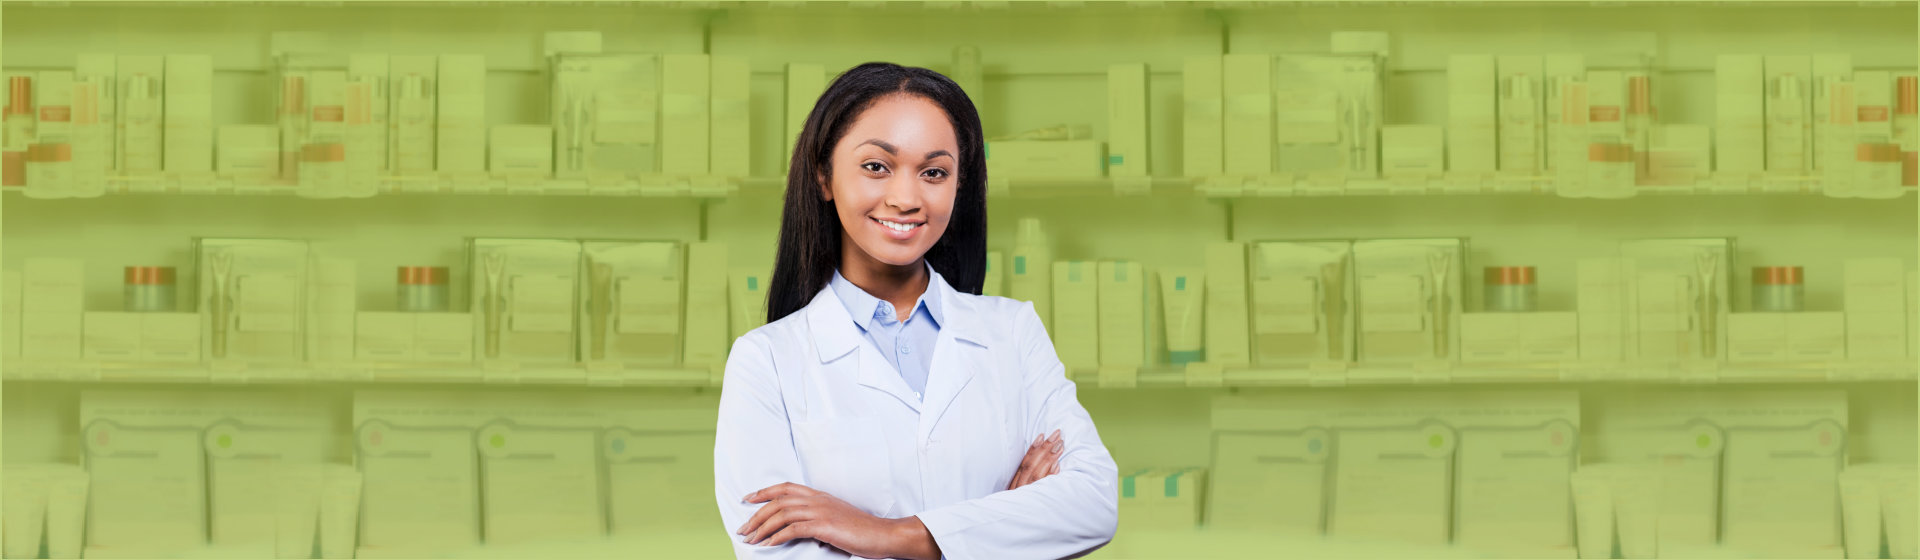 young pharmacist smiling